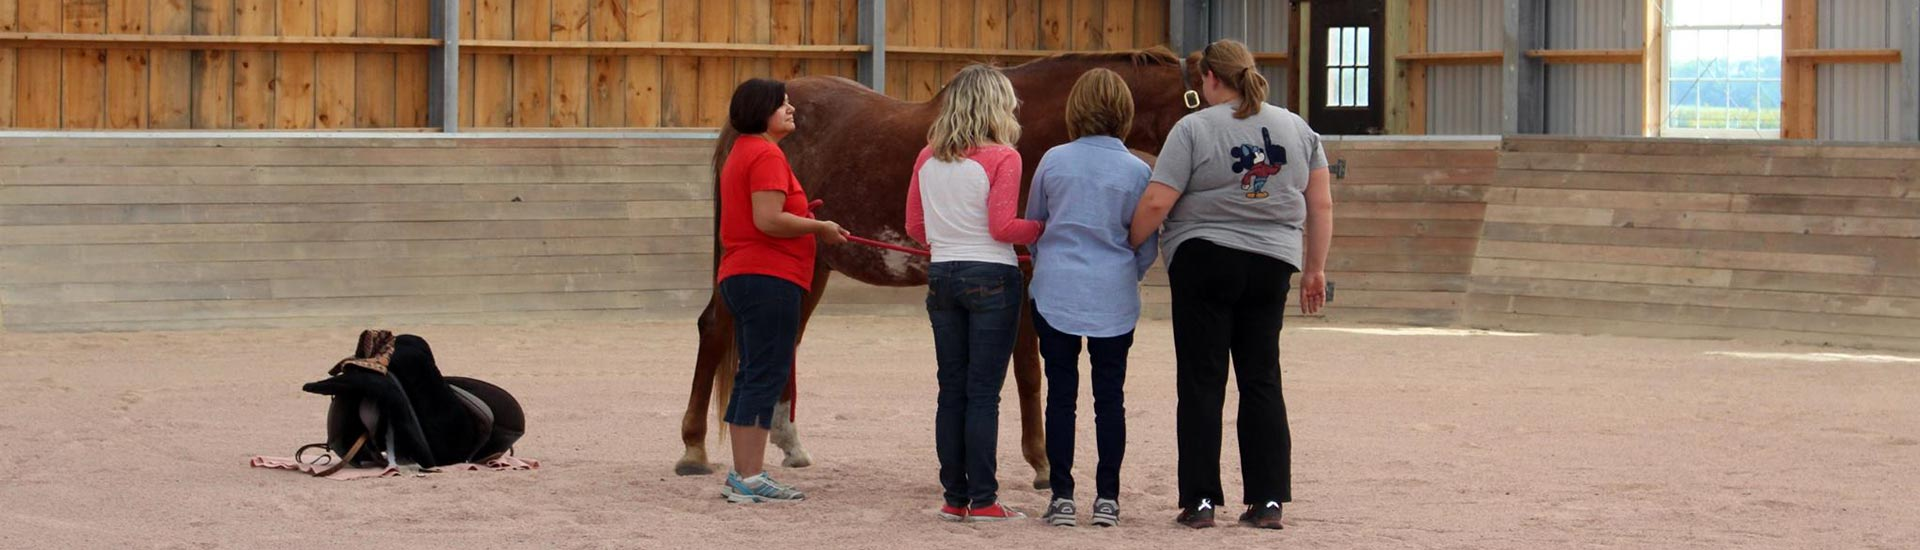 Women in Arena with Horse